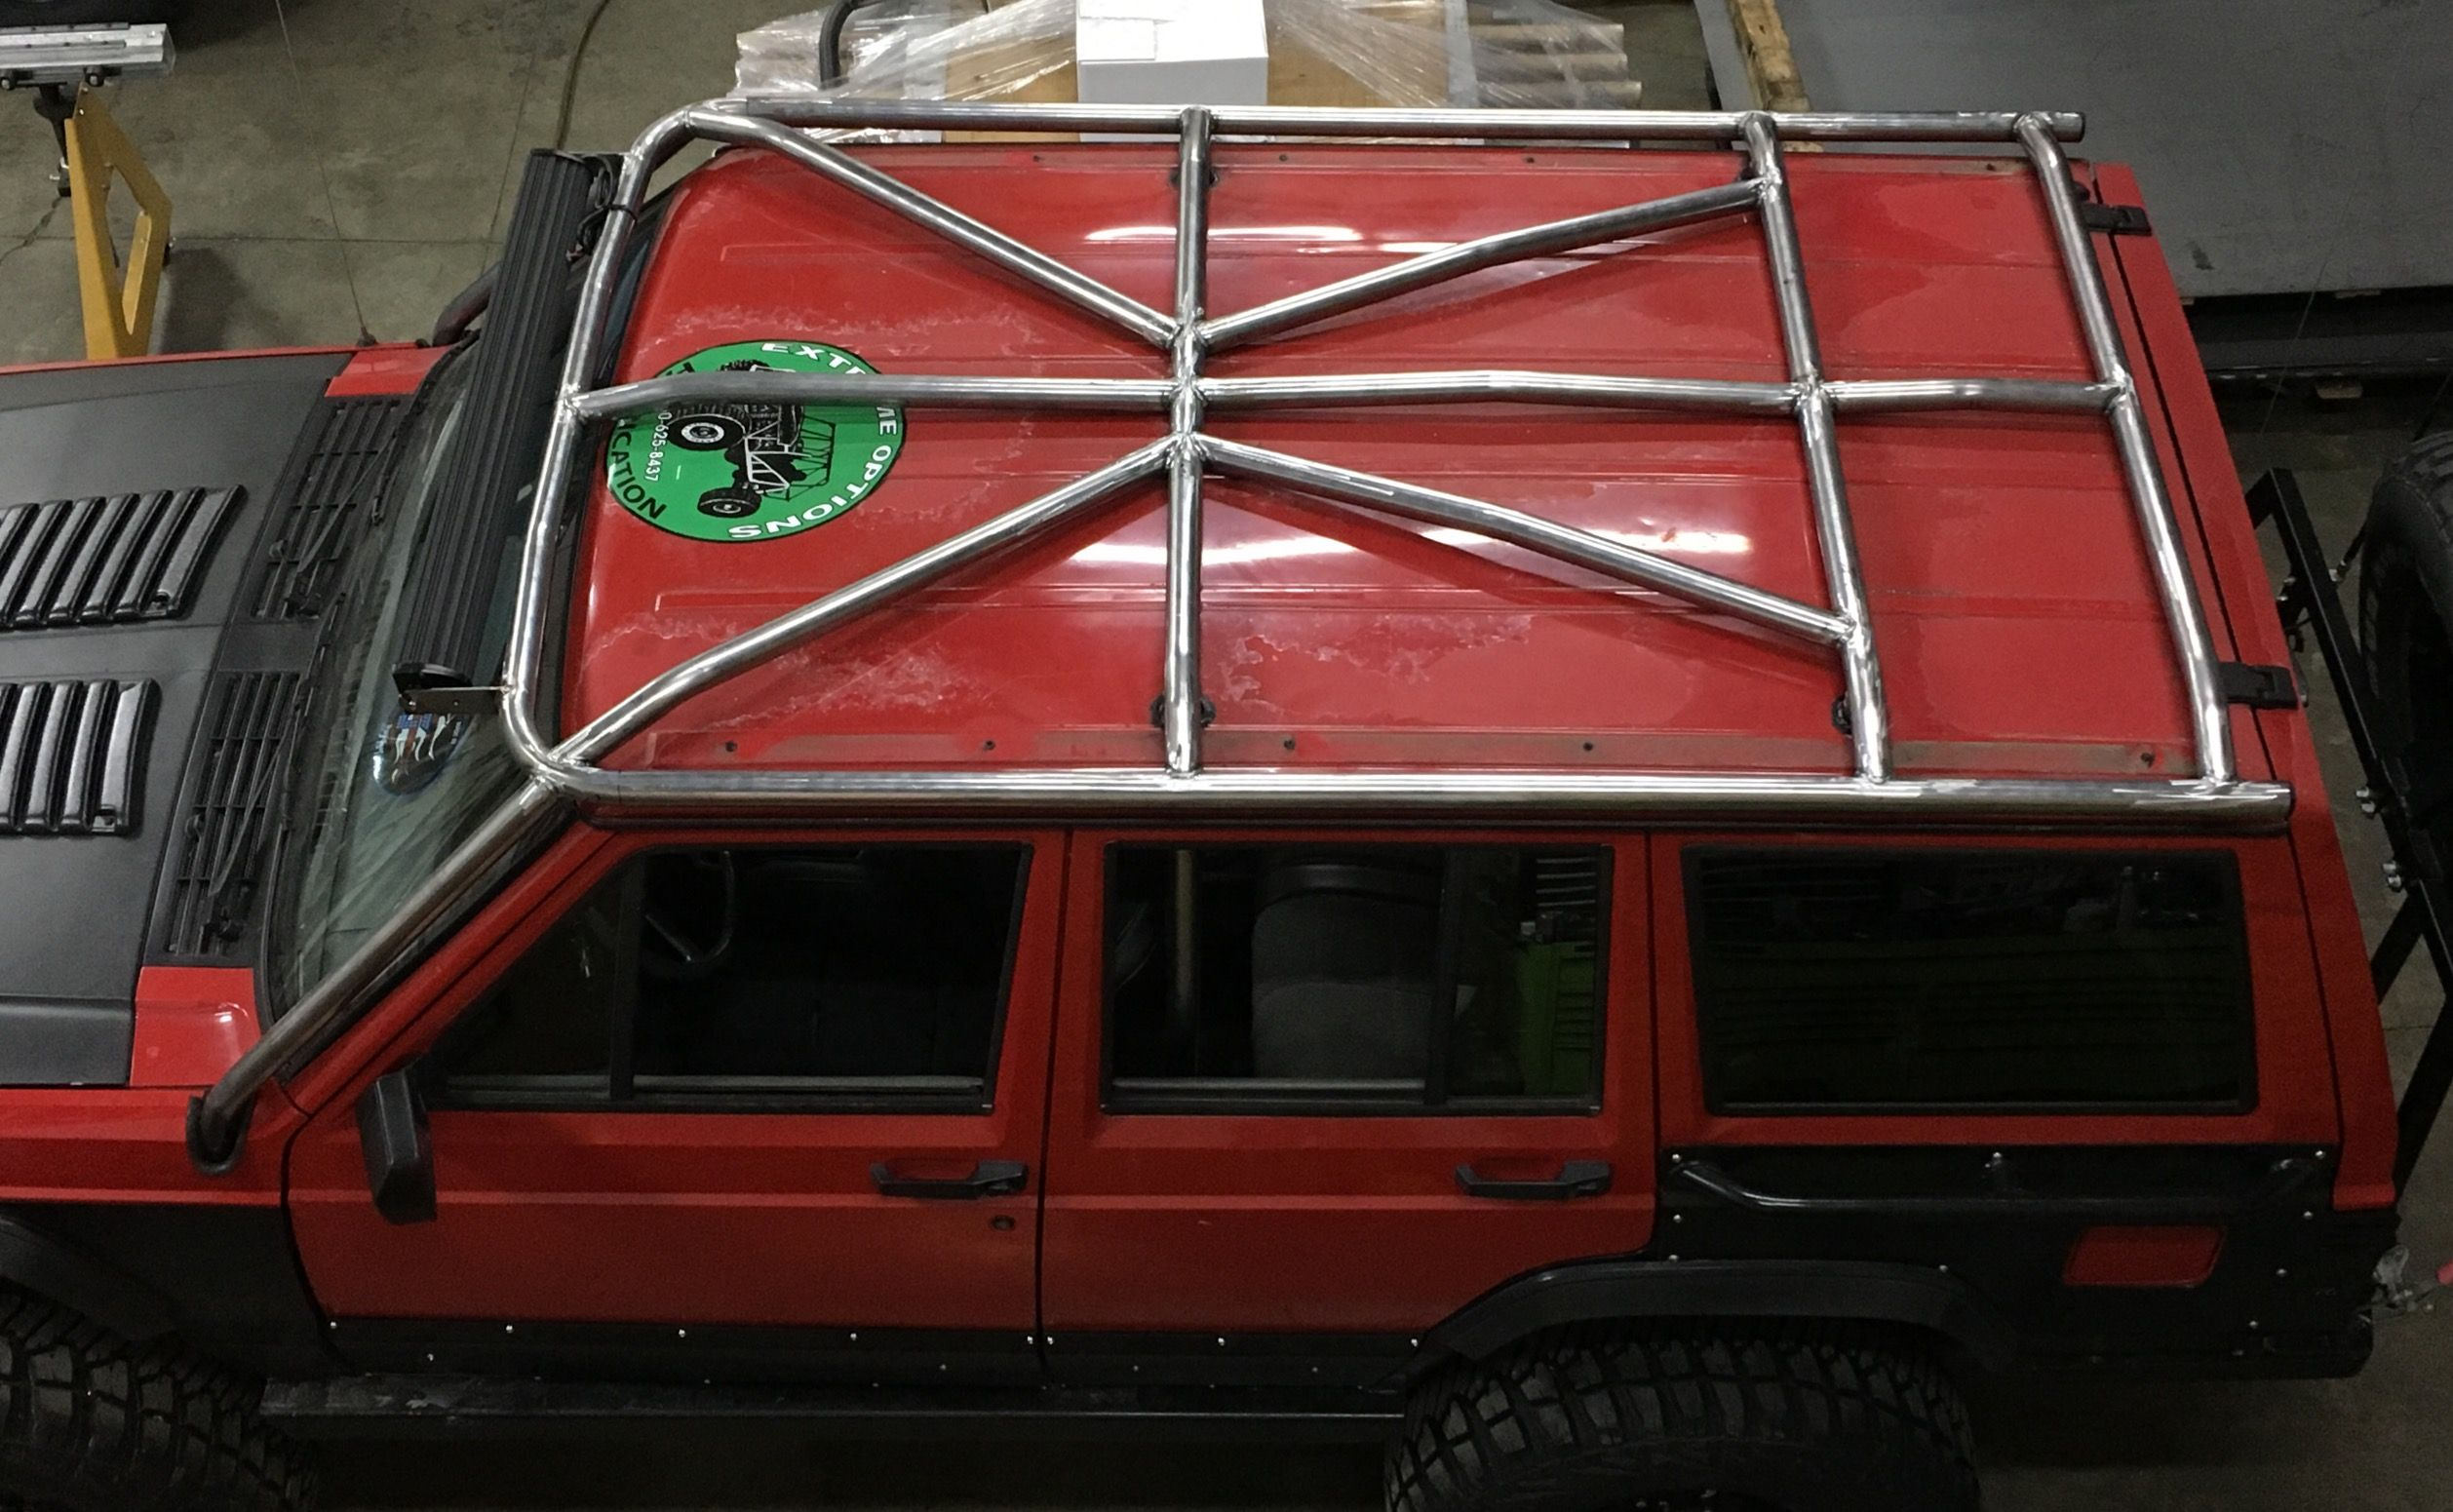 Xj Hybrid Builder Diy Cage Kit Cage Jeep Xj Rock Sliders